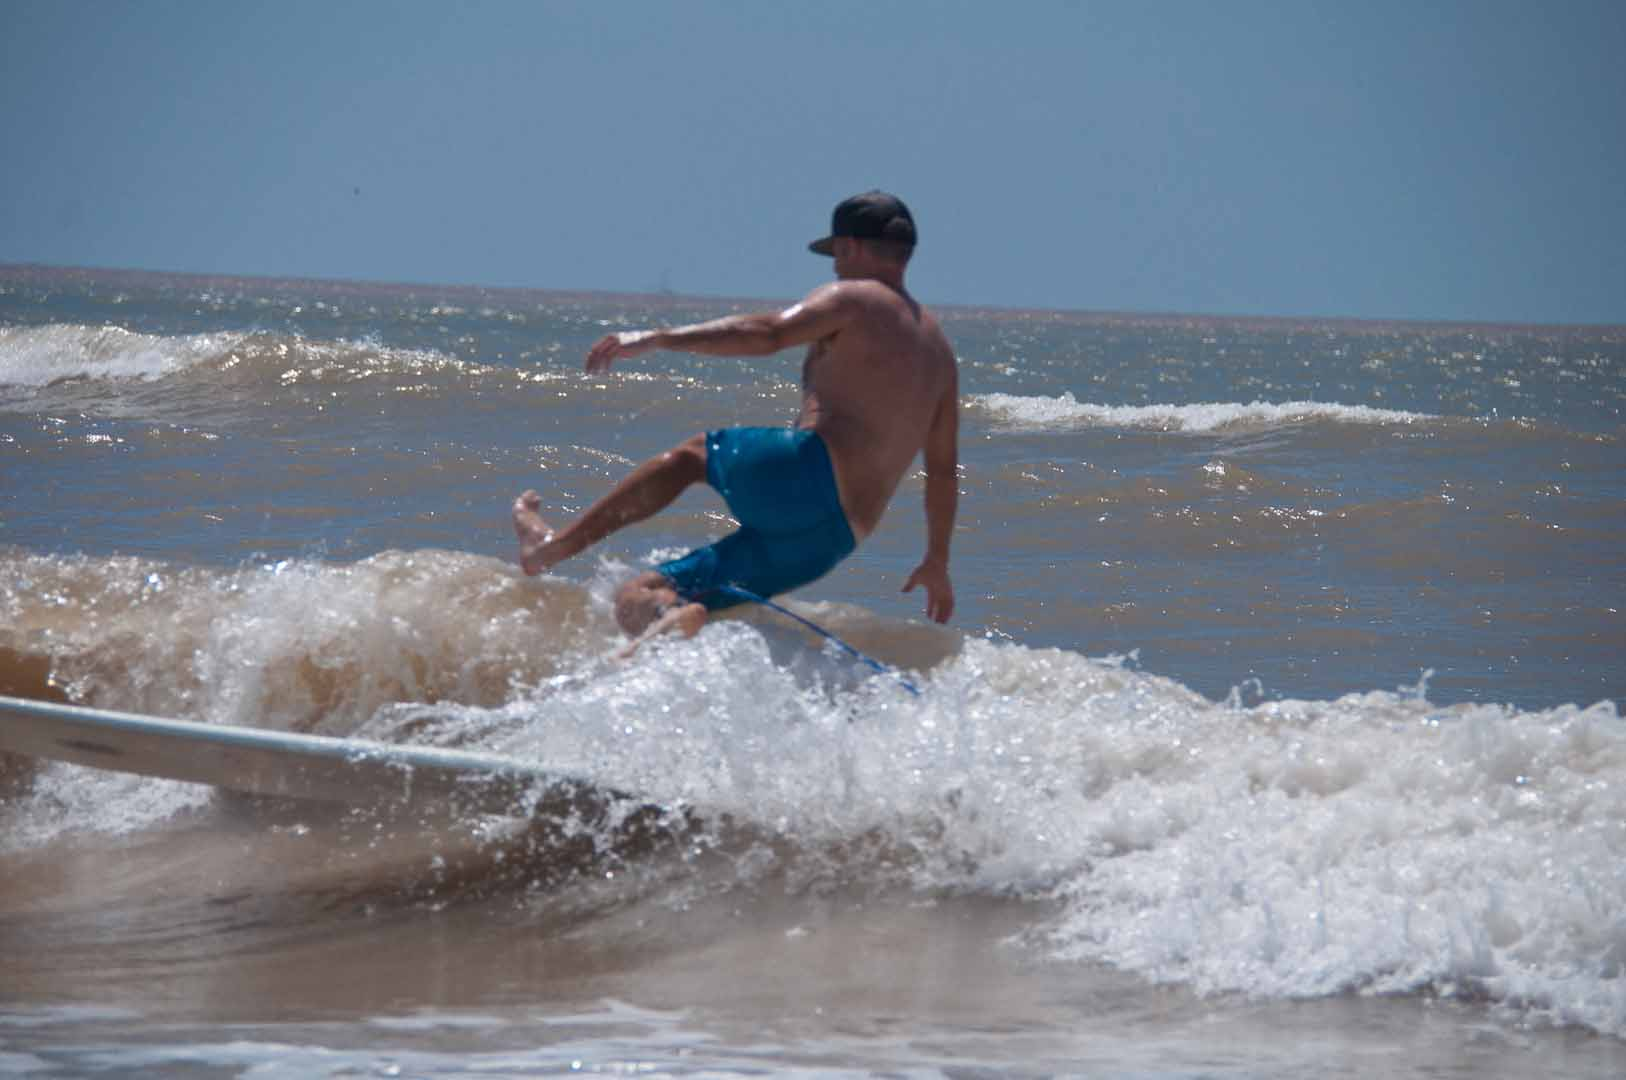 SurfsideLateJune_20150627_144